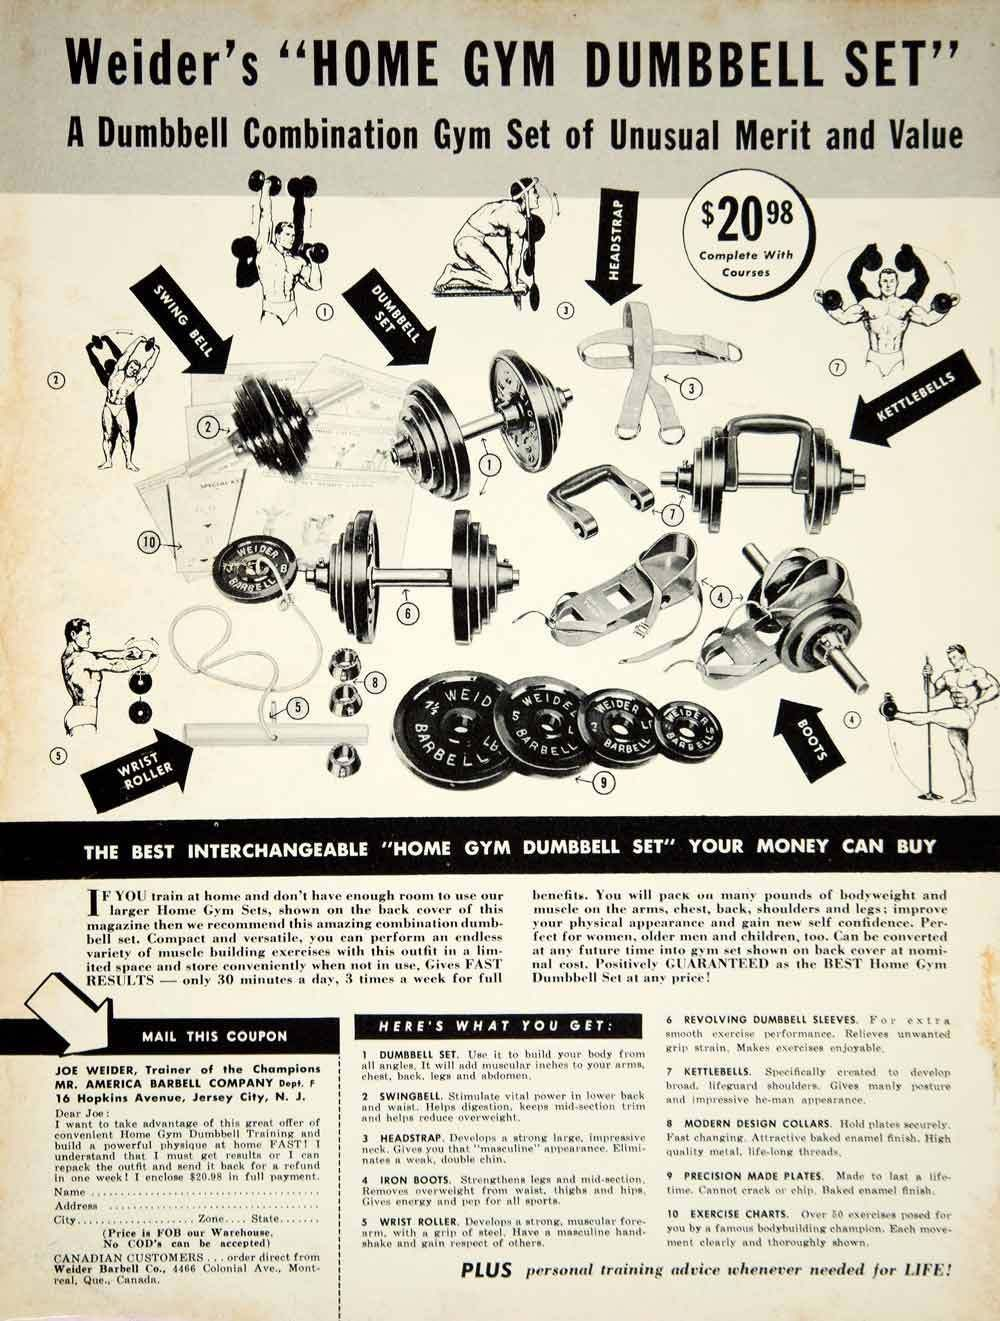 Classic Weider Ad From 60s Gym Dumbbells Joe Weider Muscle Building Workouts